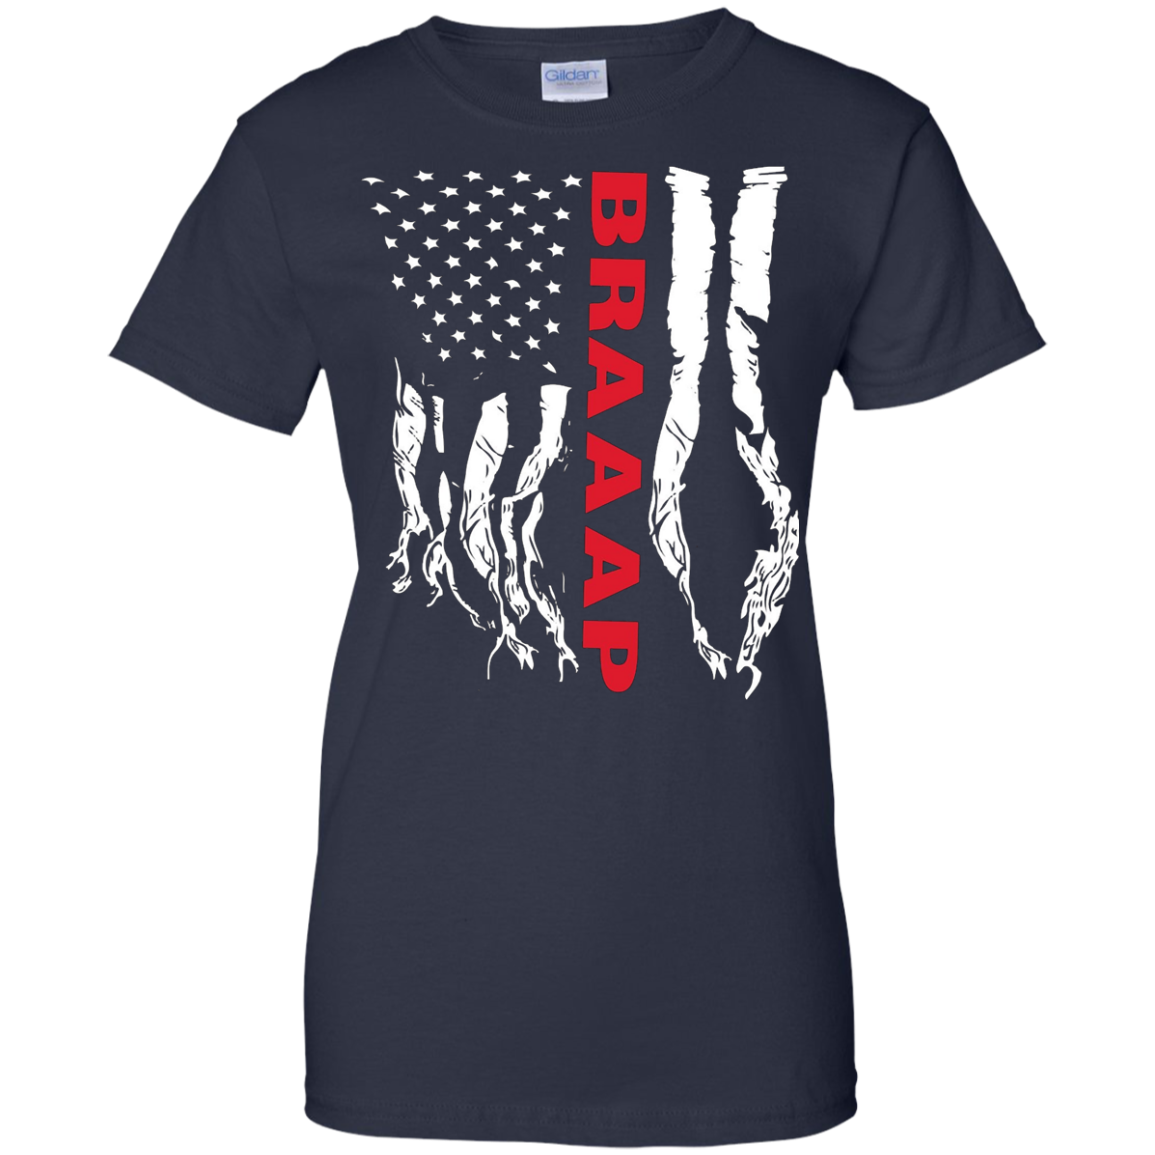 Braaap Shirt - Braap Motorcycle T-shirt, Motocross Shirts